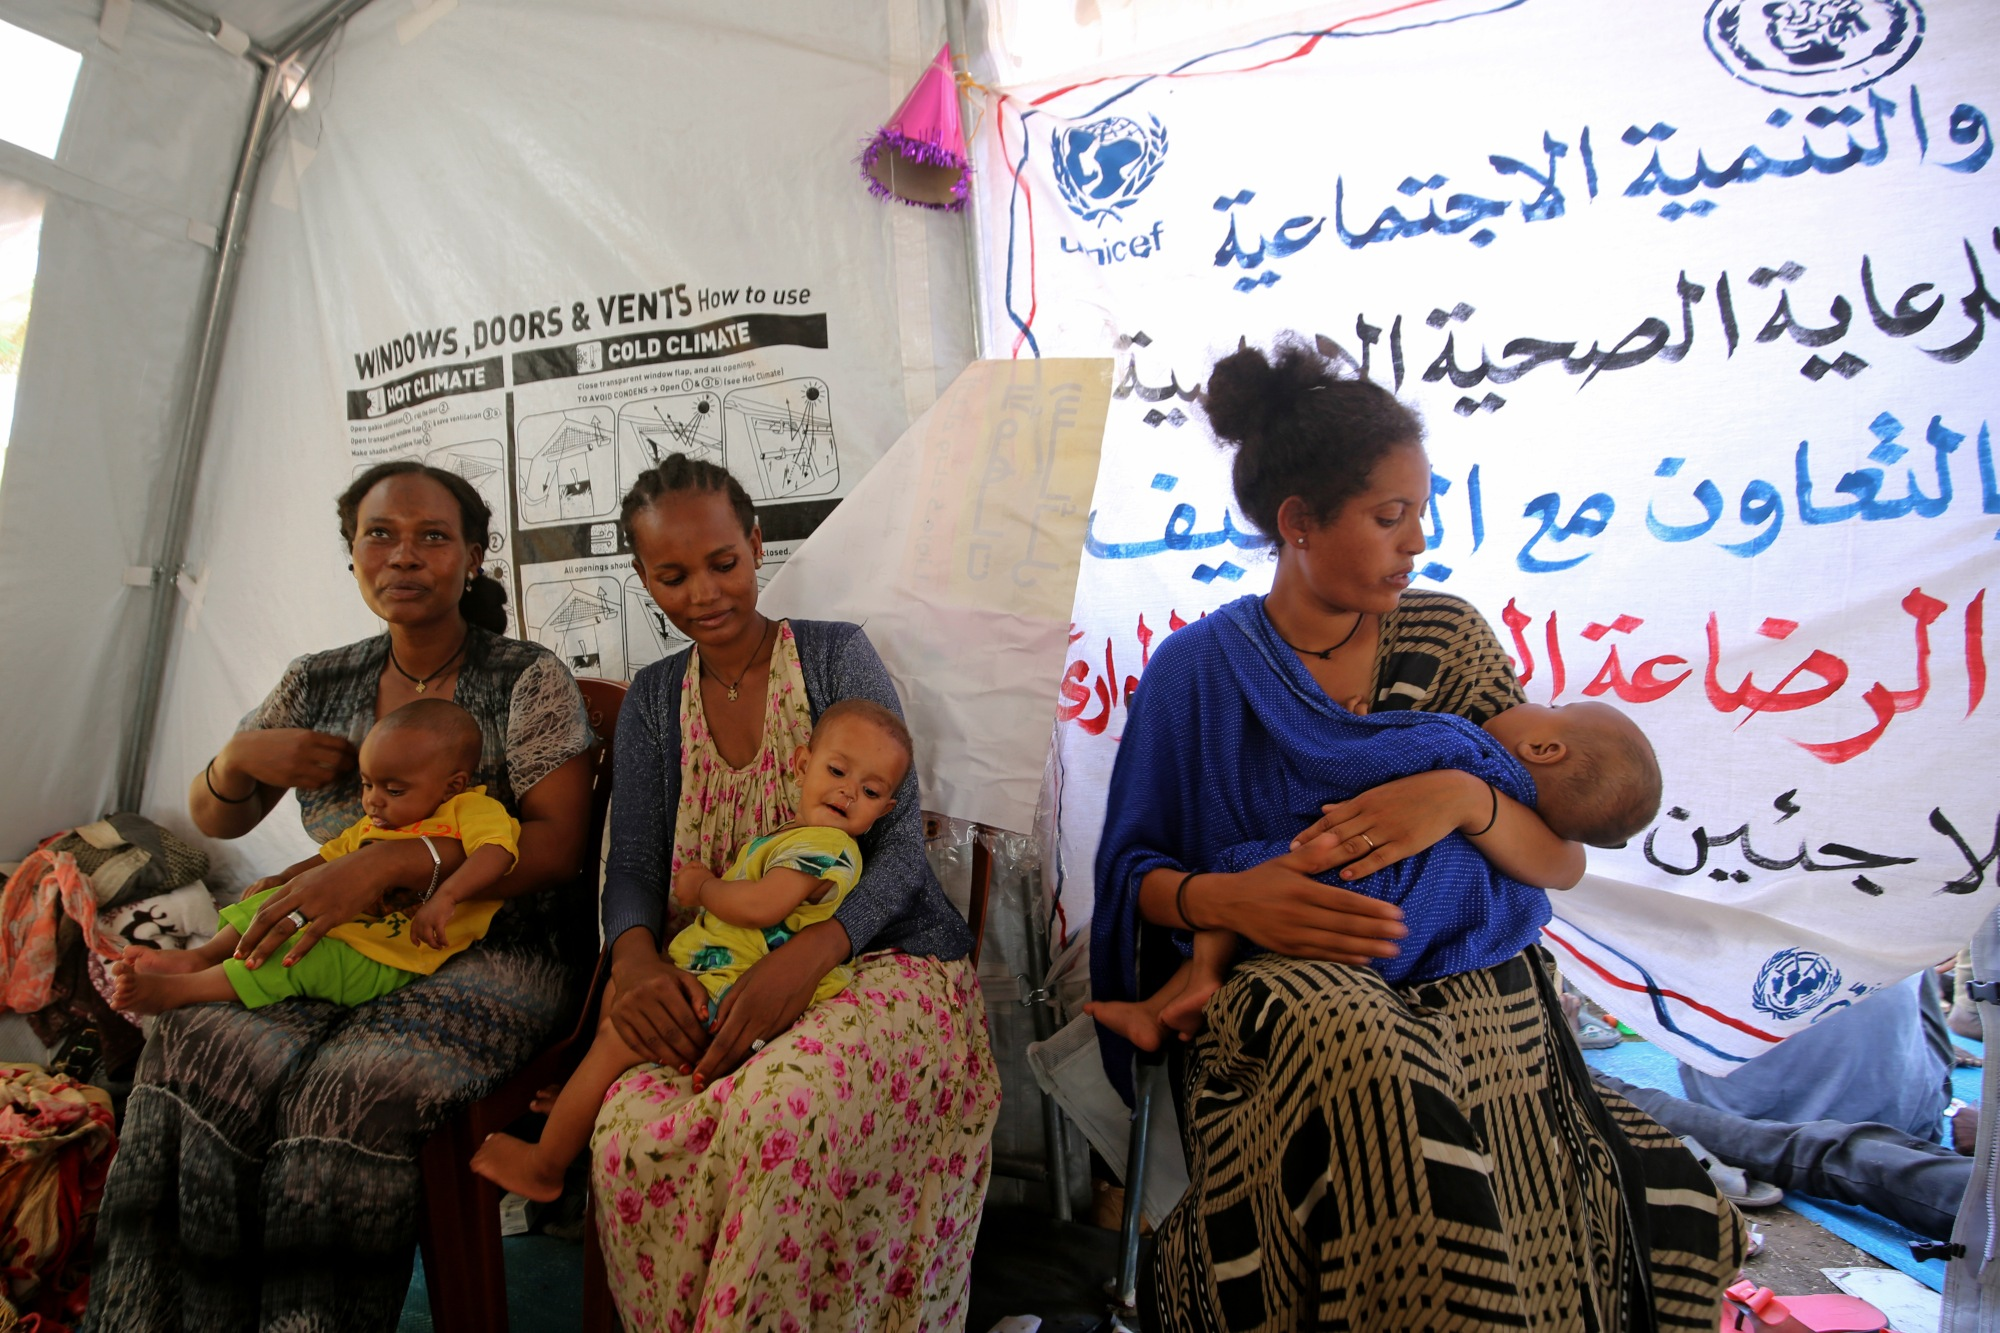 Ethiopian refugees who fled the fighting in the Tigray receive maternity care in the Hamdaiet area of Sudan's eastern Kassala state on 22 November 2020 (AFP)